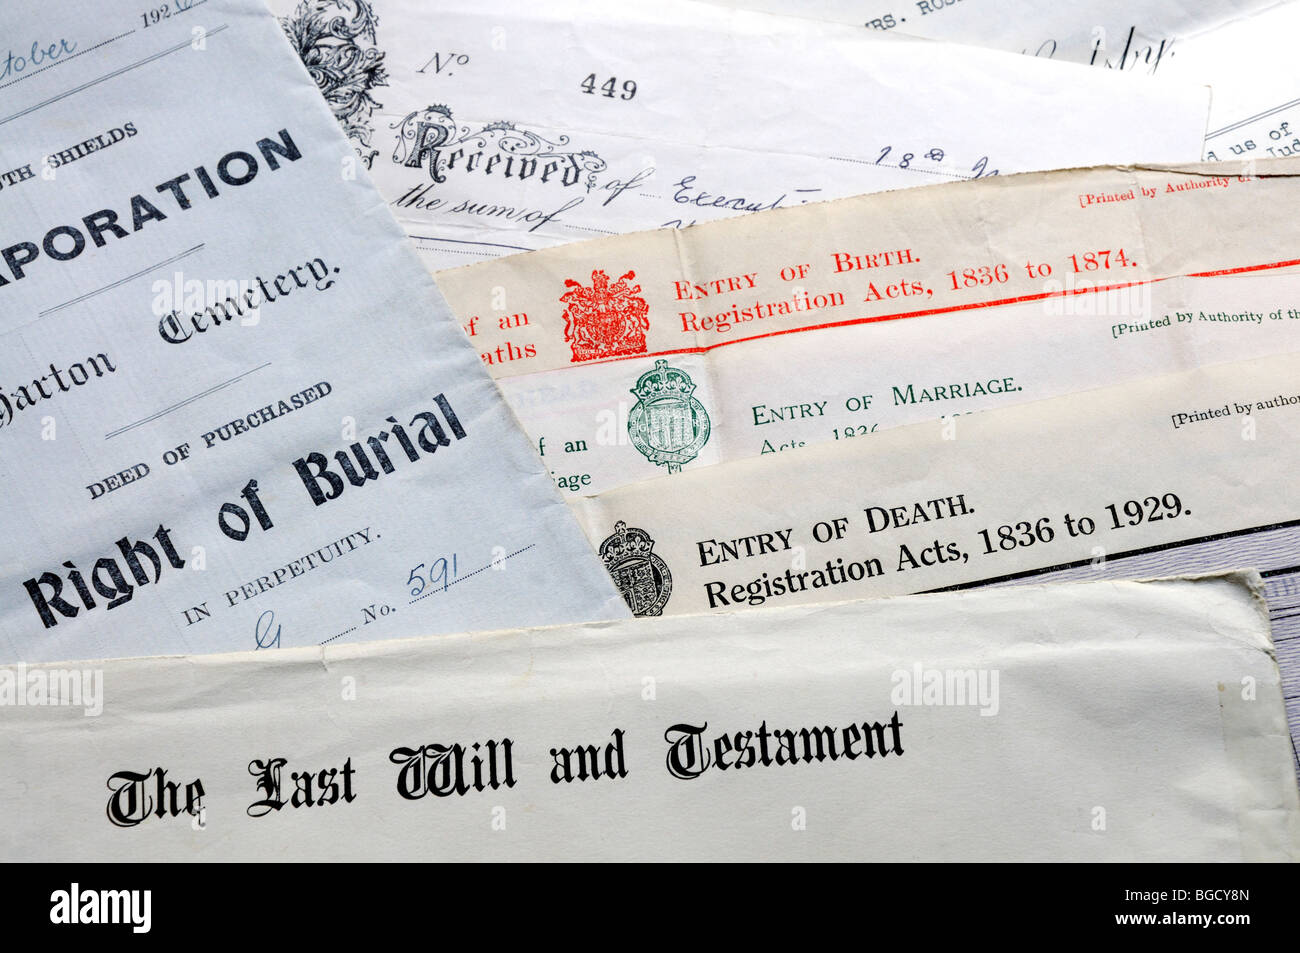 Genealogy documents - Certificates of birth, marriage and death, right of burial and last will and testament - Stock Image